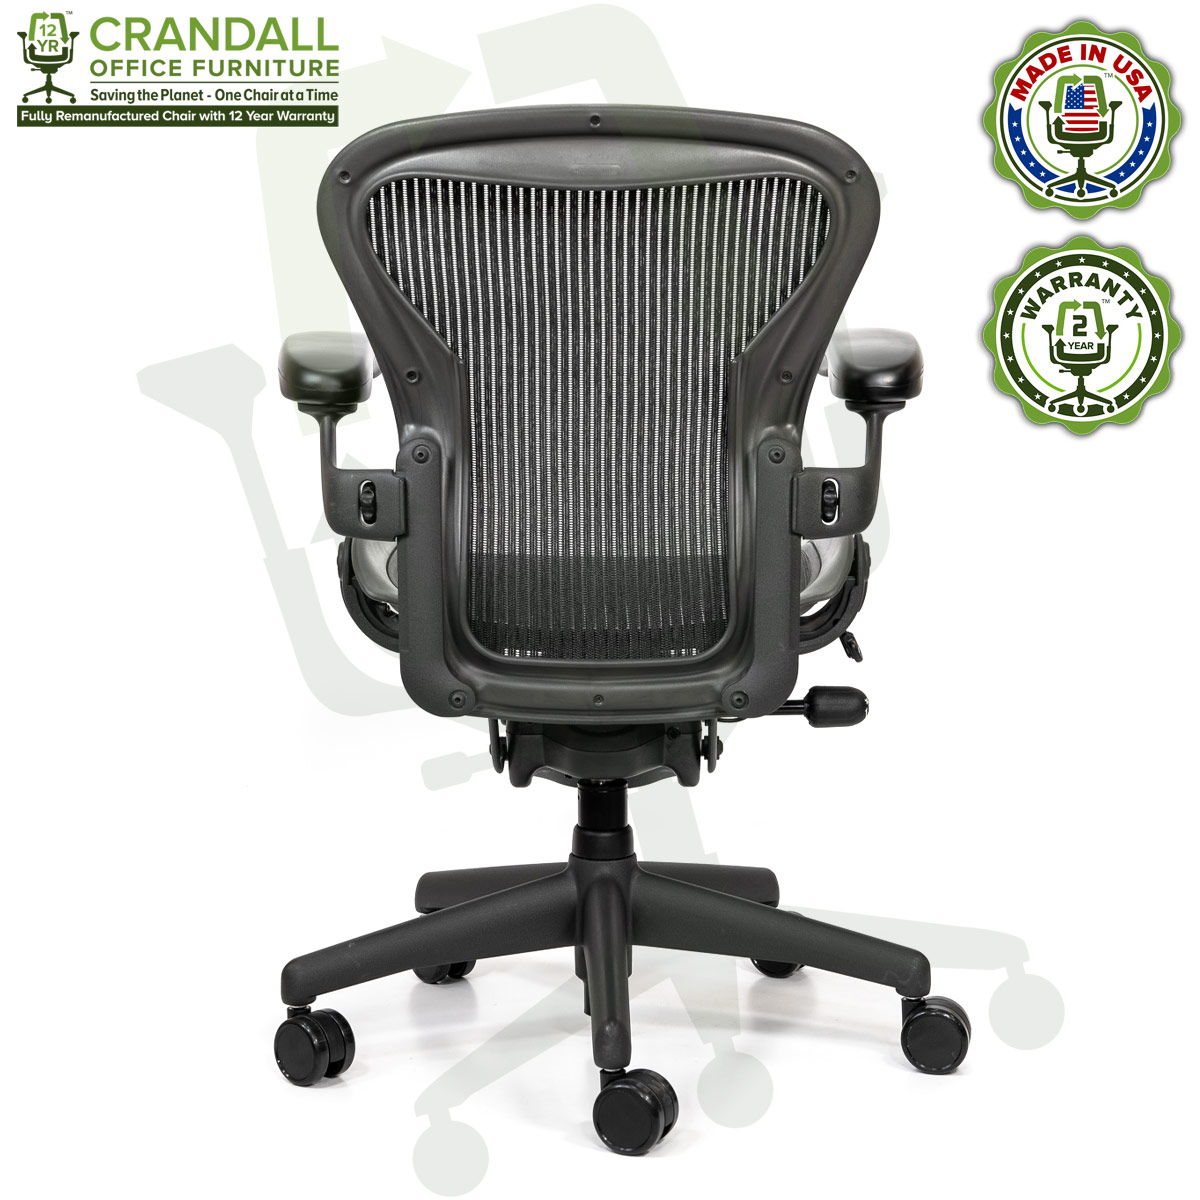 Crandall Office Refurbished Herman Miller Aeron Chair - Size A - 0005